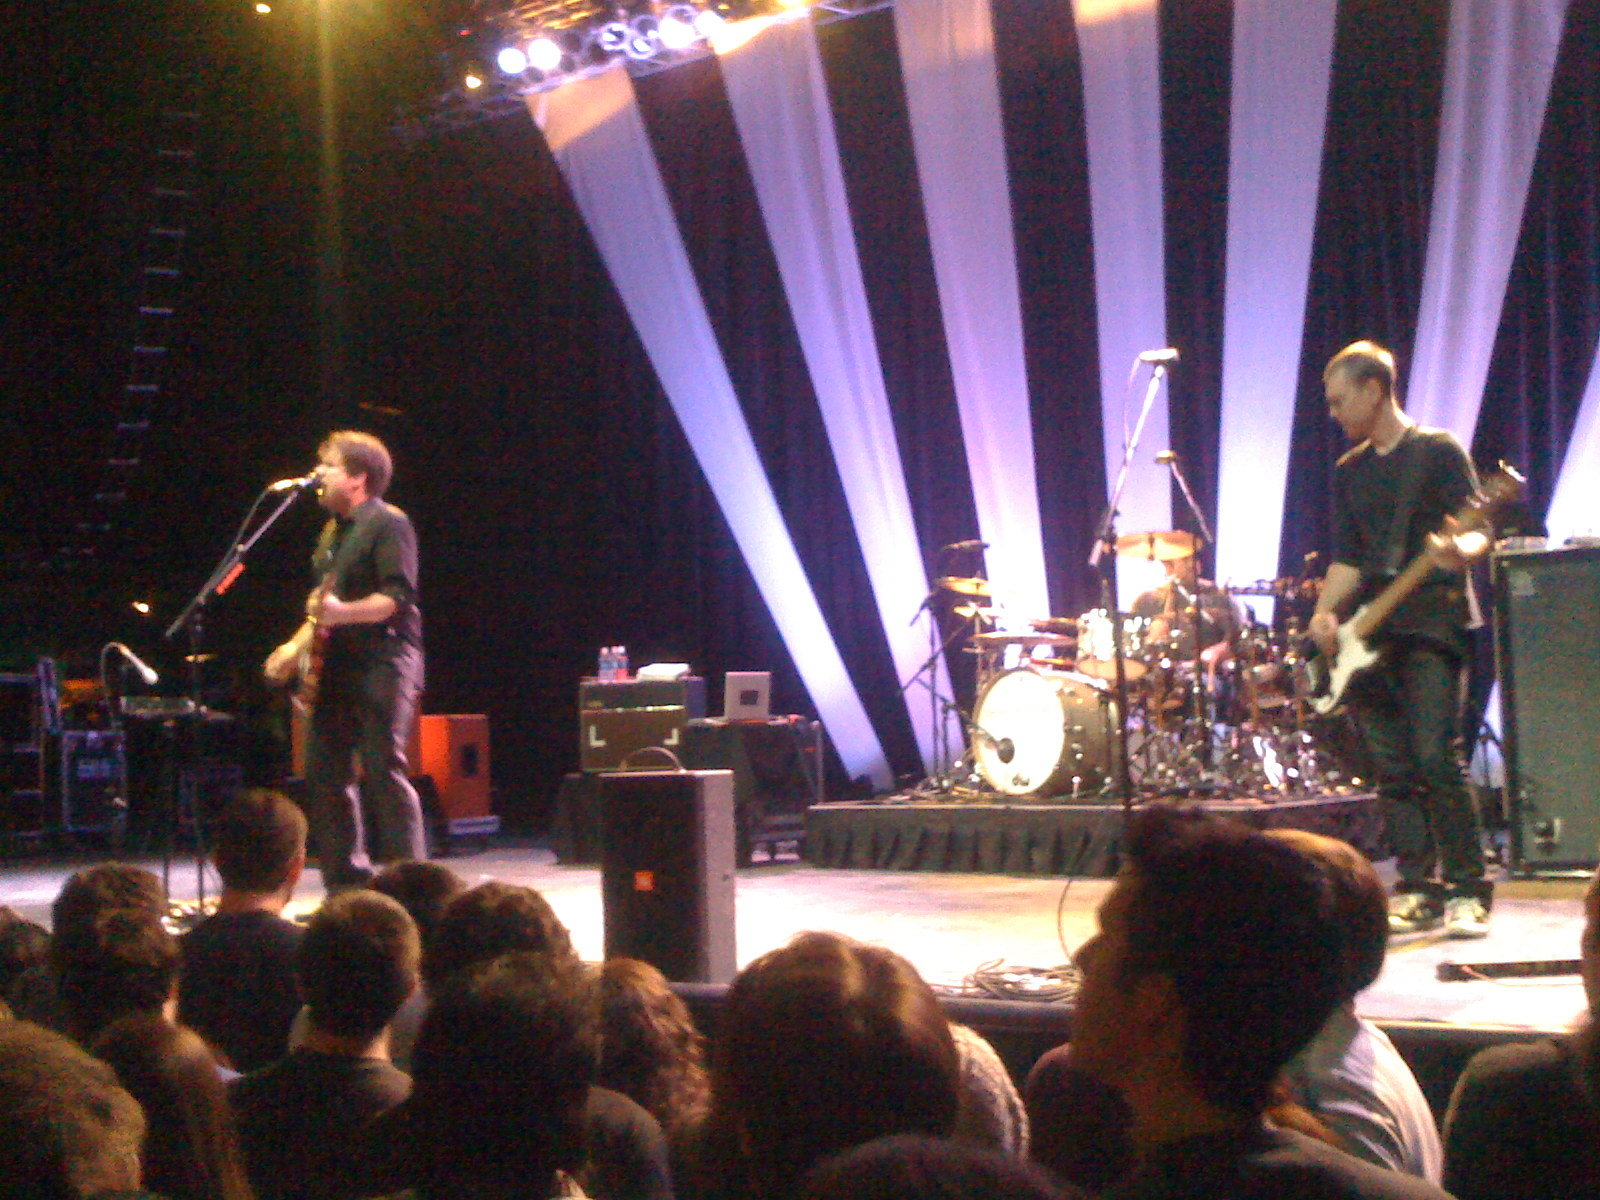 Concert Review: Jimmy Eat World – House of Blues Boston